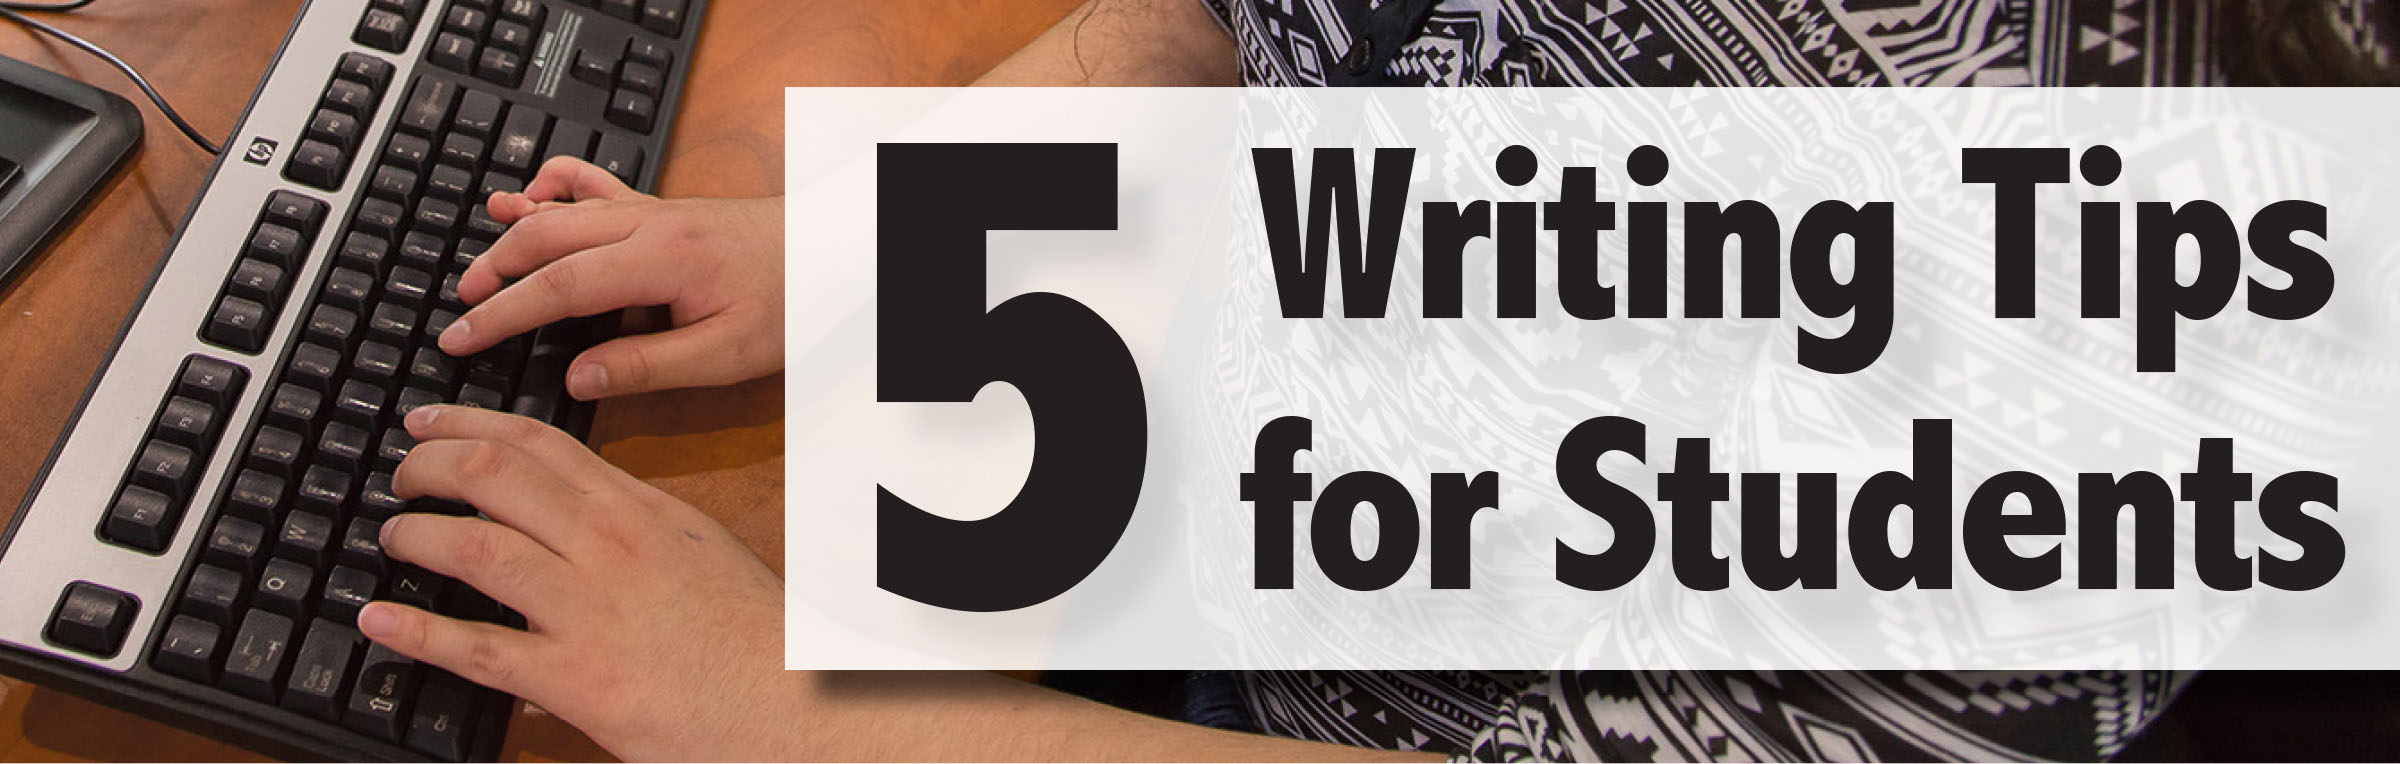 five writing tips for students jjc joliet junior college